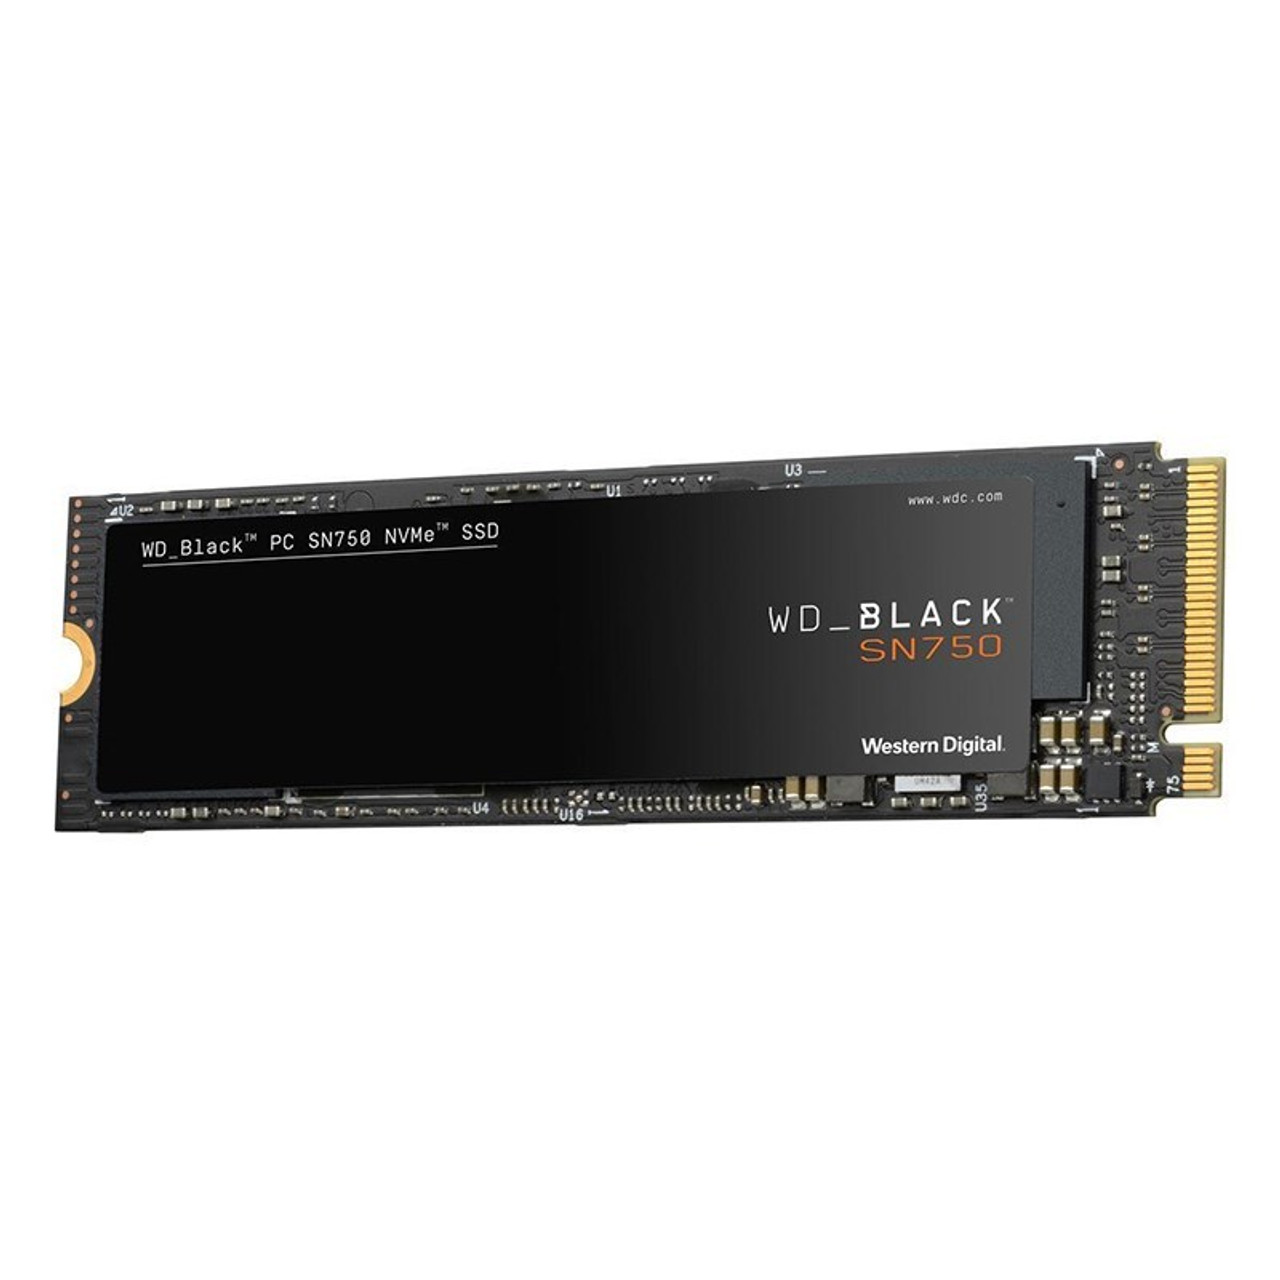 Image for Western Digital WD Black SN750 2TB NVMe M.2 (2280) PCIe 3x4 3D NAND SSD - without heatsink CX Computer Superstore